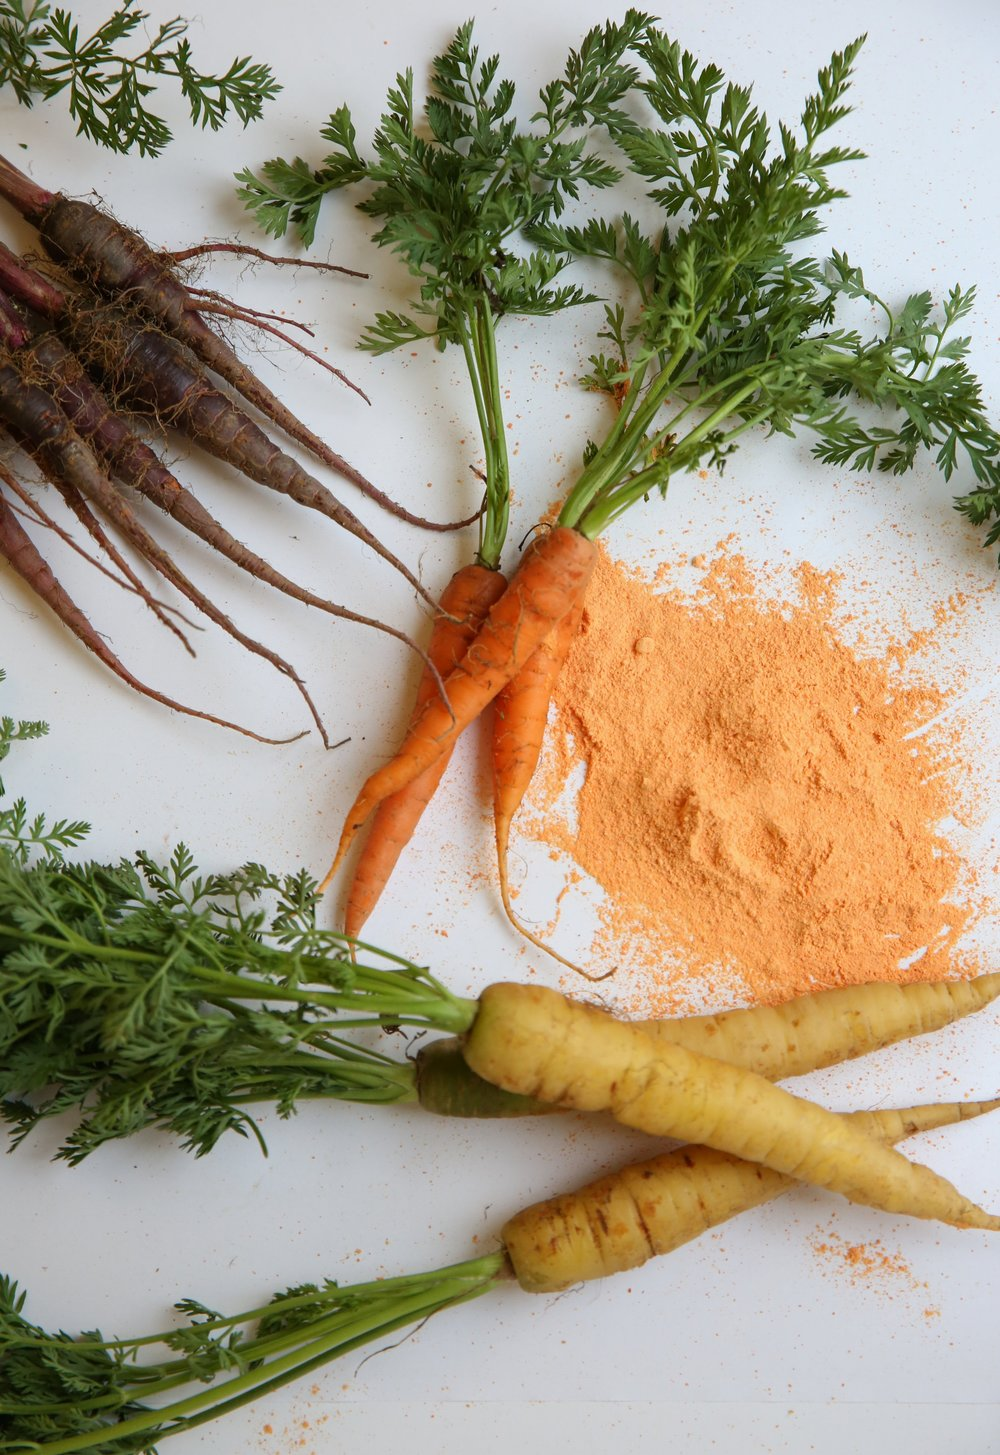 Carrots, Spices.jpg